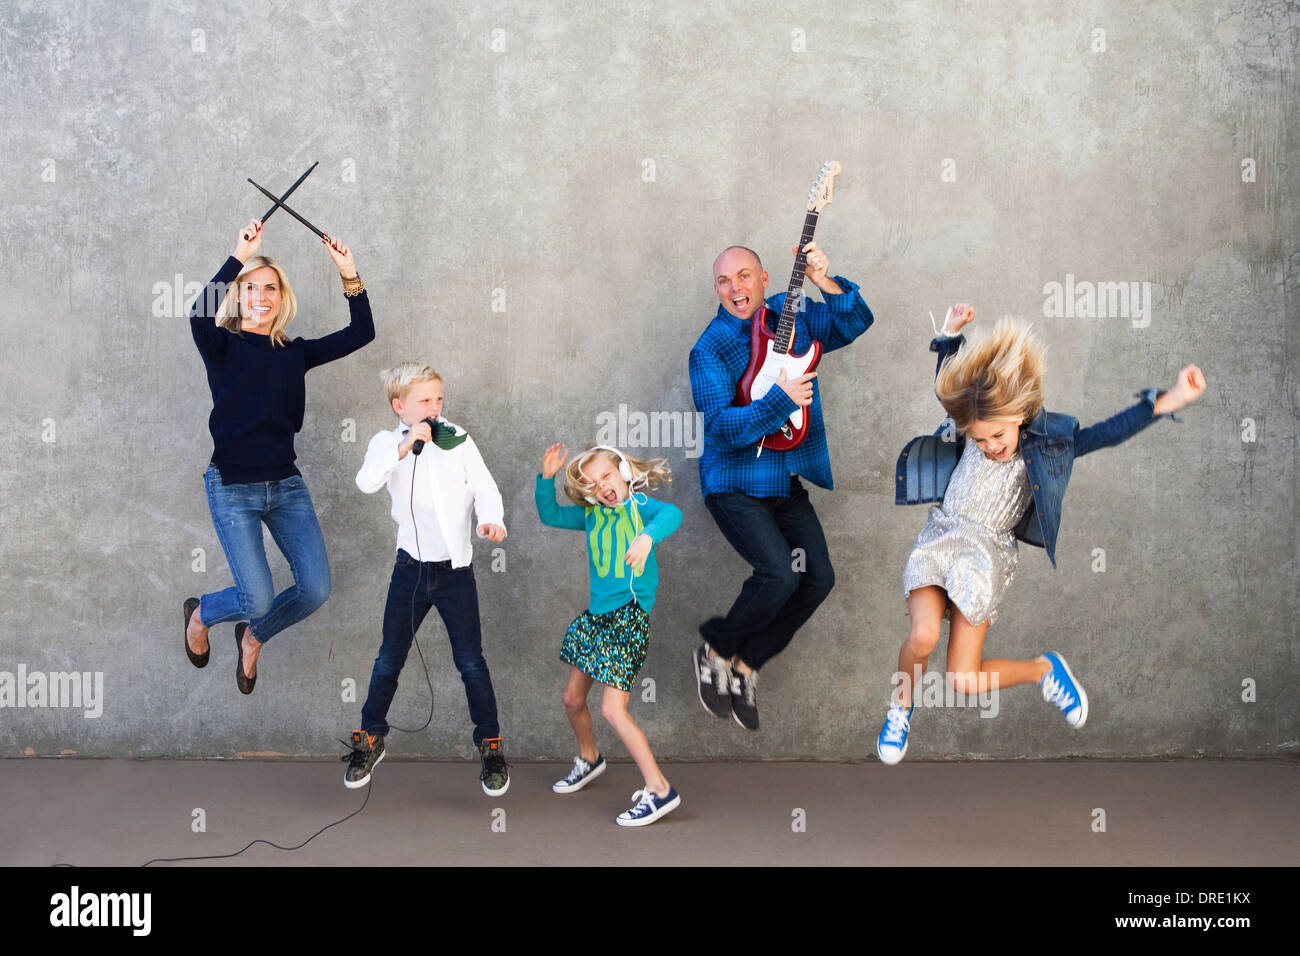 Family rocking out - Stock Image